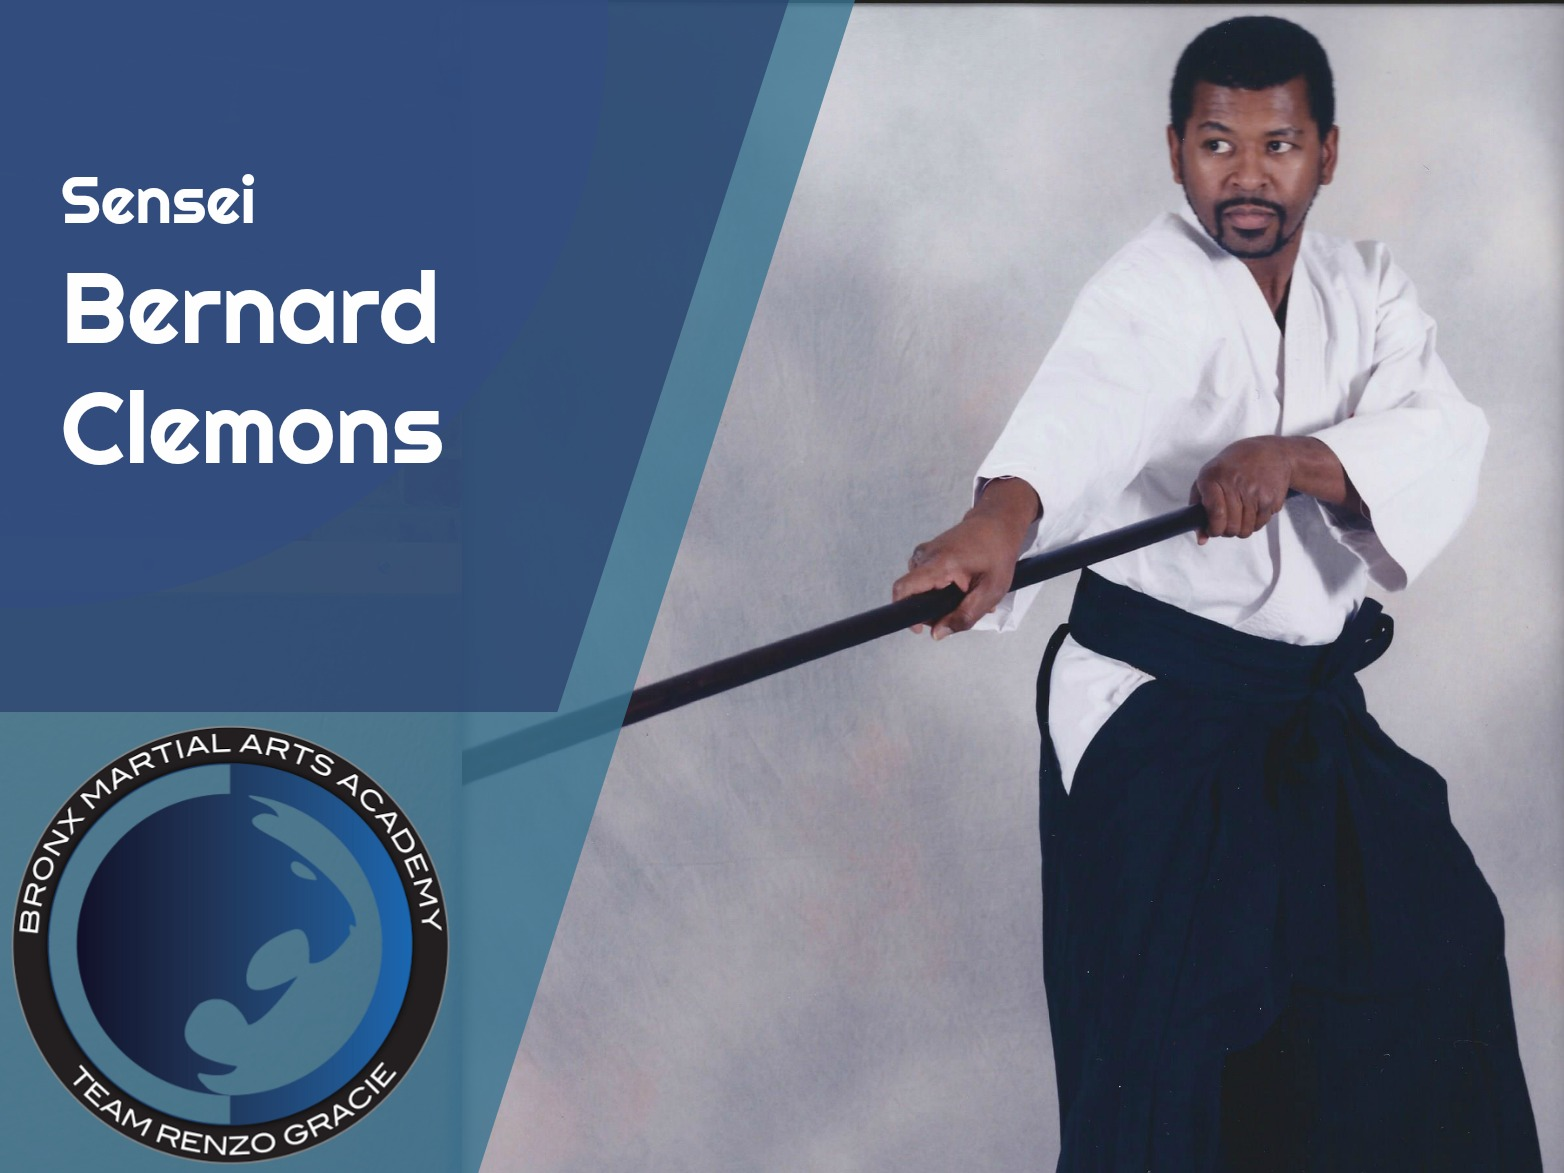 Shotokan Karate Black Belt  Sensei Bernard Clemons started training Shotokan Karate in 1992 at Kai Leung's Shotojuku in Astoria, Queens under Sensei Gene Dunn. After earning his Black Belt on December 9, 1995 under Shihan Kai Leung that's when his journey really began. His never ending thirst for knowledge in the martial arts has also taken him into the study of Kobudo (weapons) and Goshin Jitsu (the art of self defense). After training Under Shihan Toshihiro Oshiro in Kobudo for twenty two years, Sensei Clemons is now one of the top weapon experts in the country. He has also won many Grand Championships with his weapon Kata's. Sensei Clemons looks to bring his love for the martial arts to the Bronx to help extend his knowledge and enthusiasm to our students.